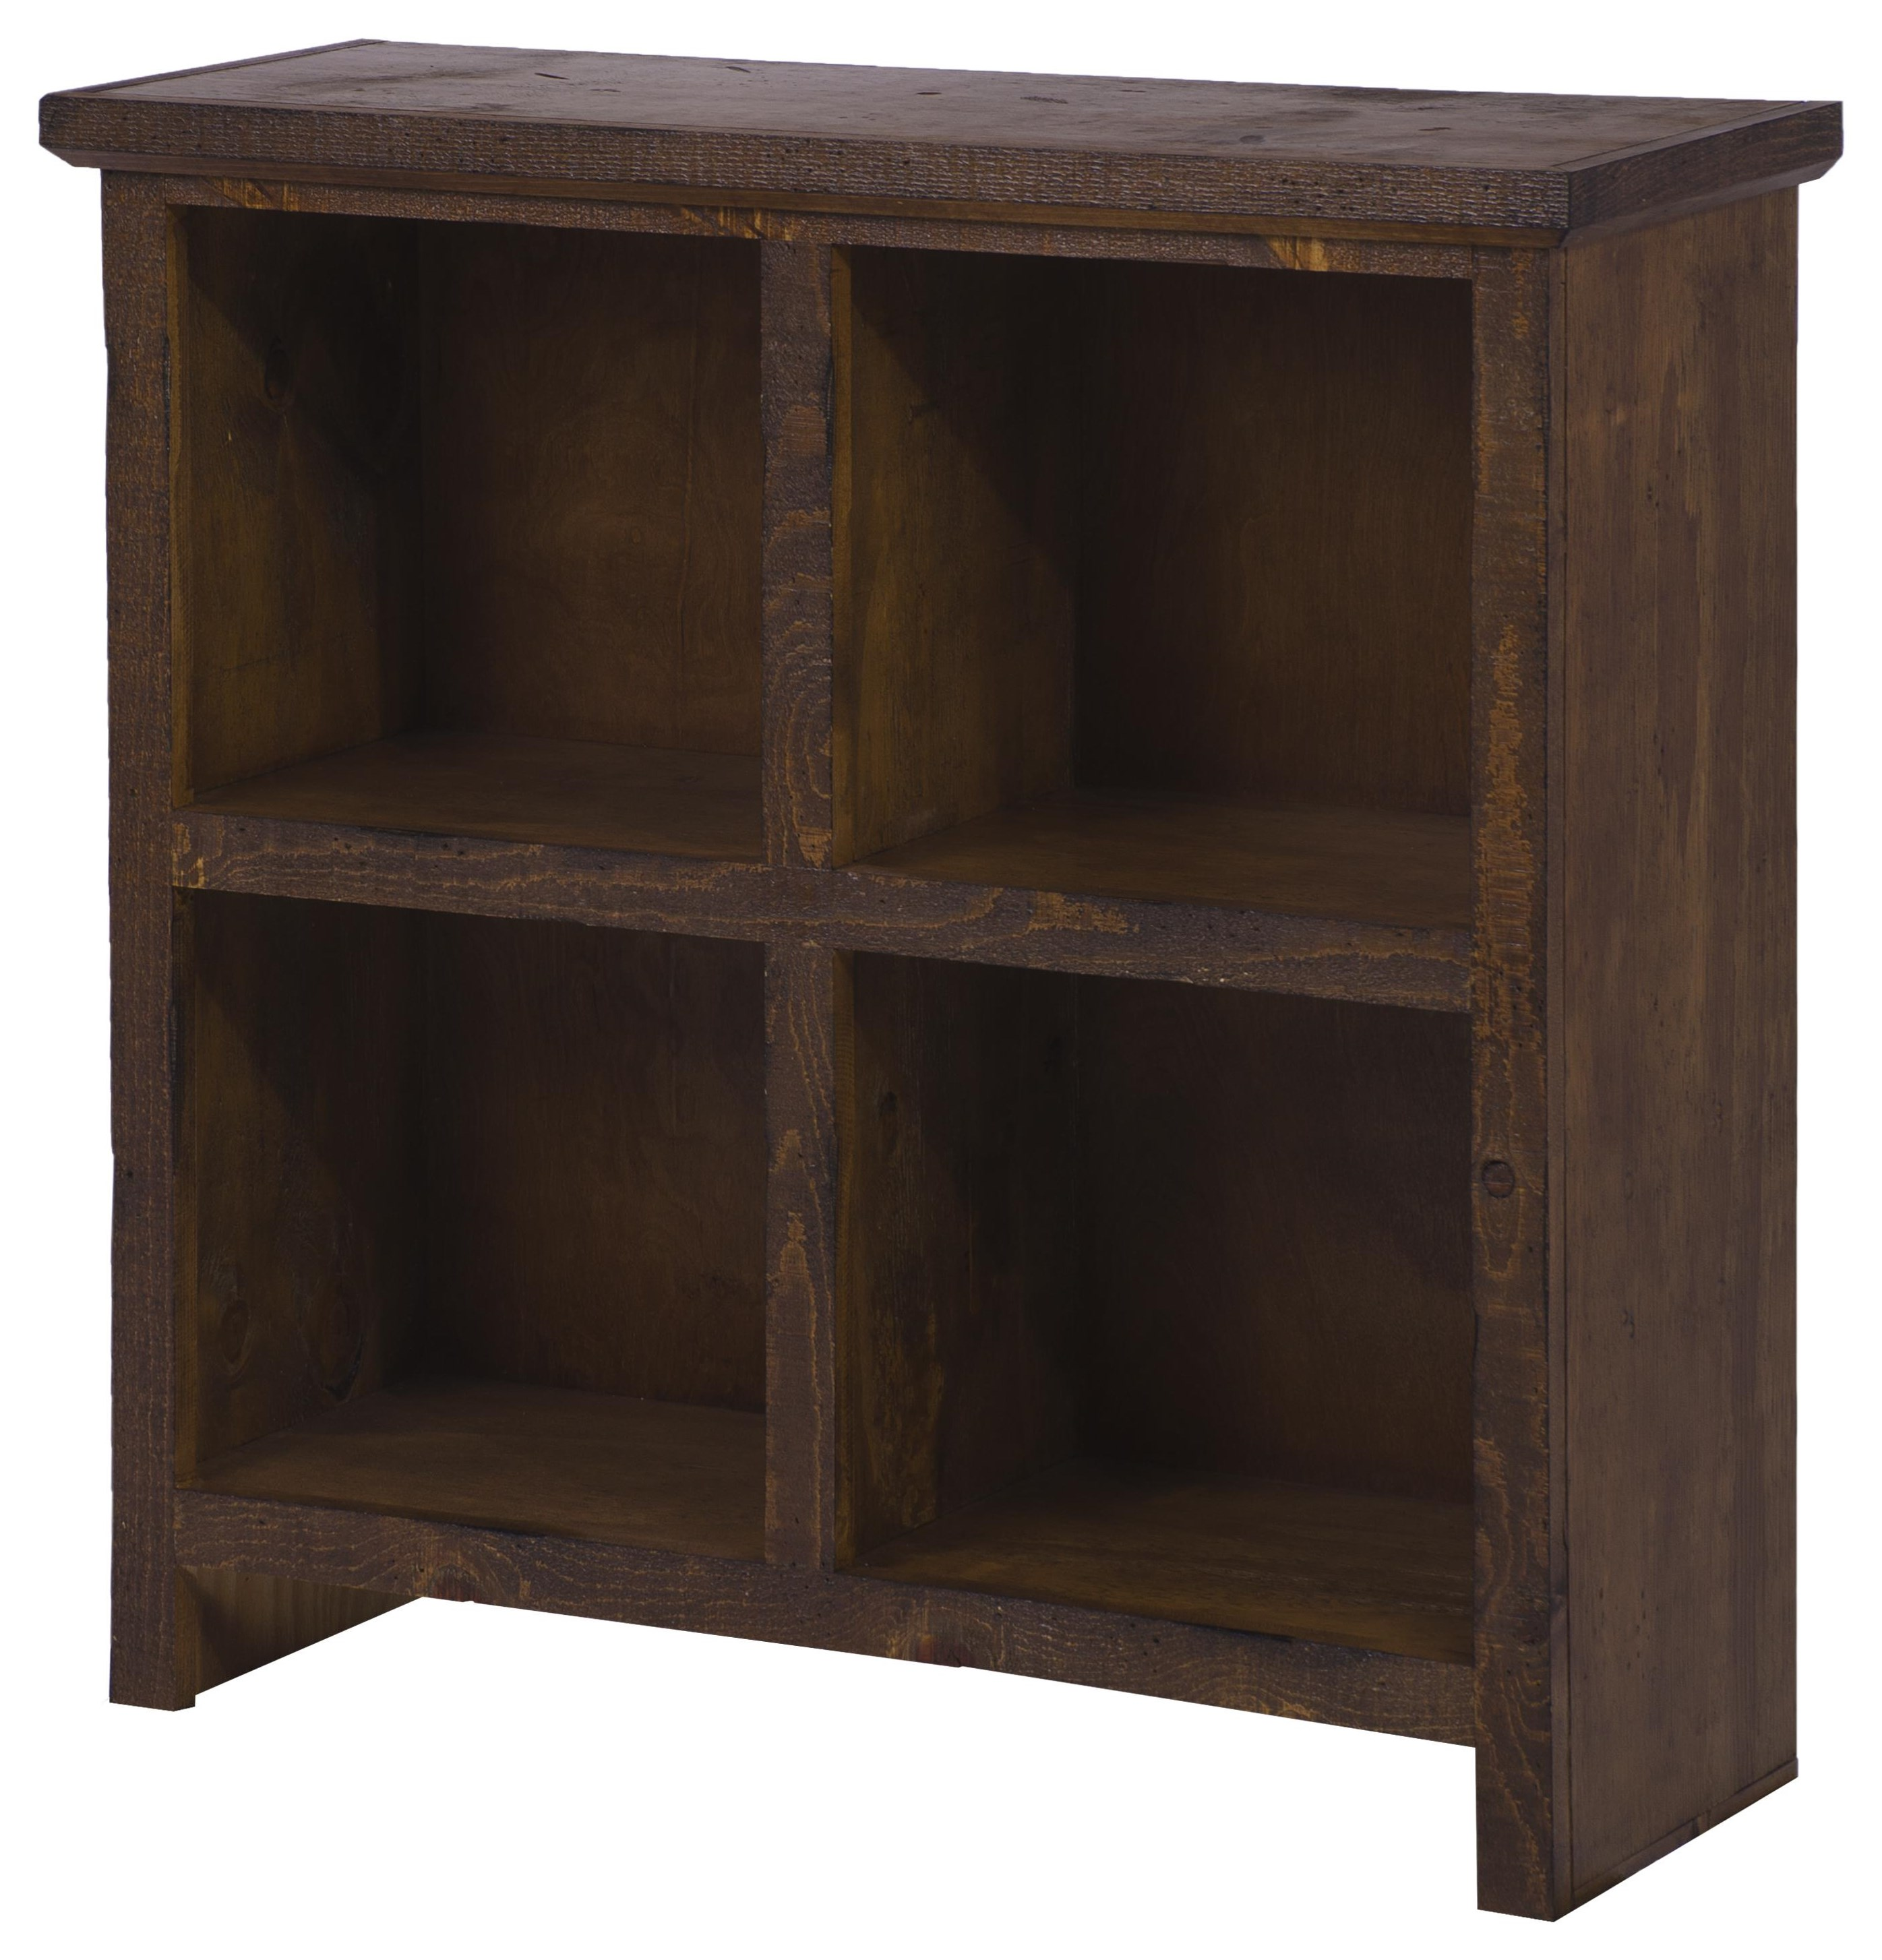 Morris Home Andover Andover Bookcase - Item Number: 782710788